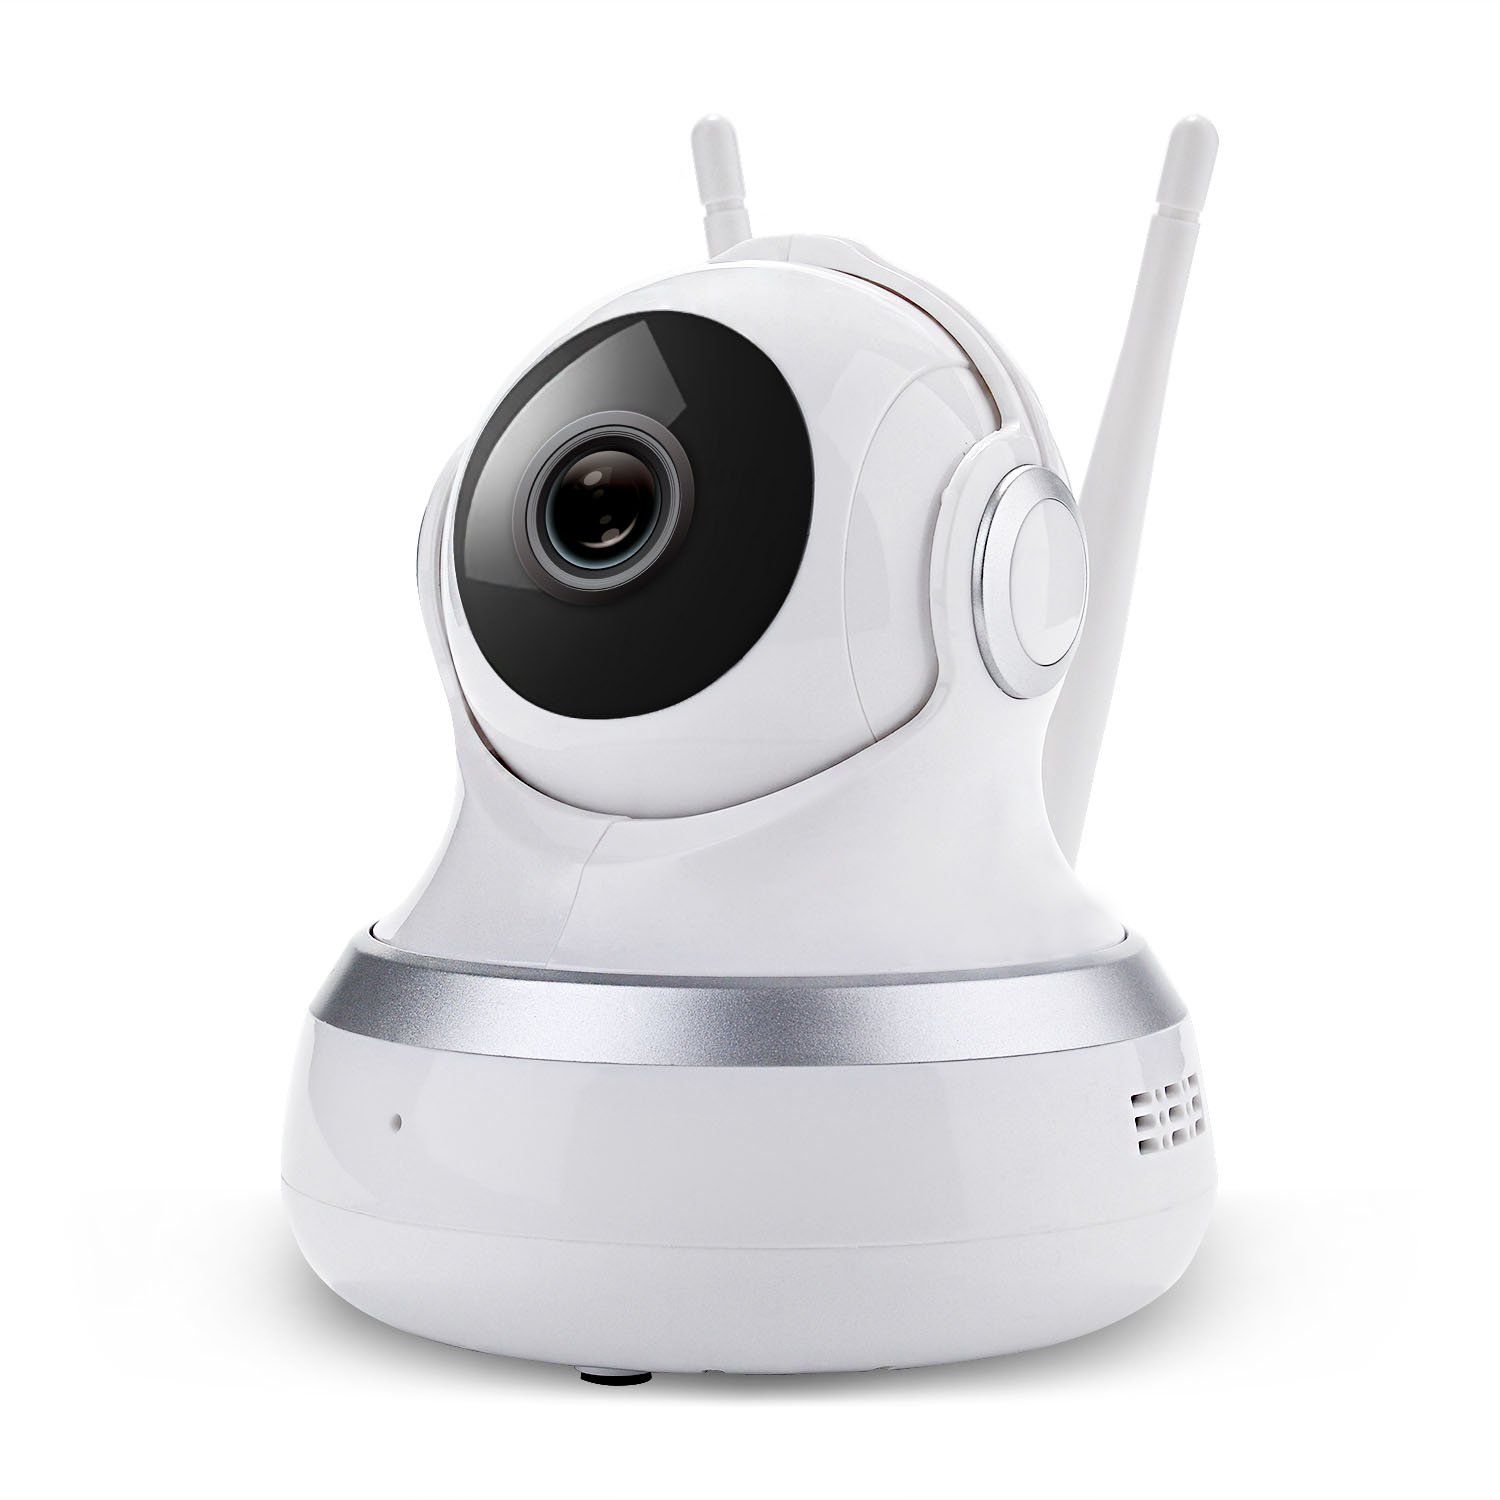 Indoor HD 1MP Wireless Security IP Camera P2P 720P H.264 Wifi Network Baby Pet Monitor - Night Vision,2-Way Audio, Micro SD Card Slot, Alarm, for PC Smartphone Android/iOS/iPhone/iPad/Tablet Keekoon